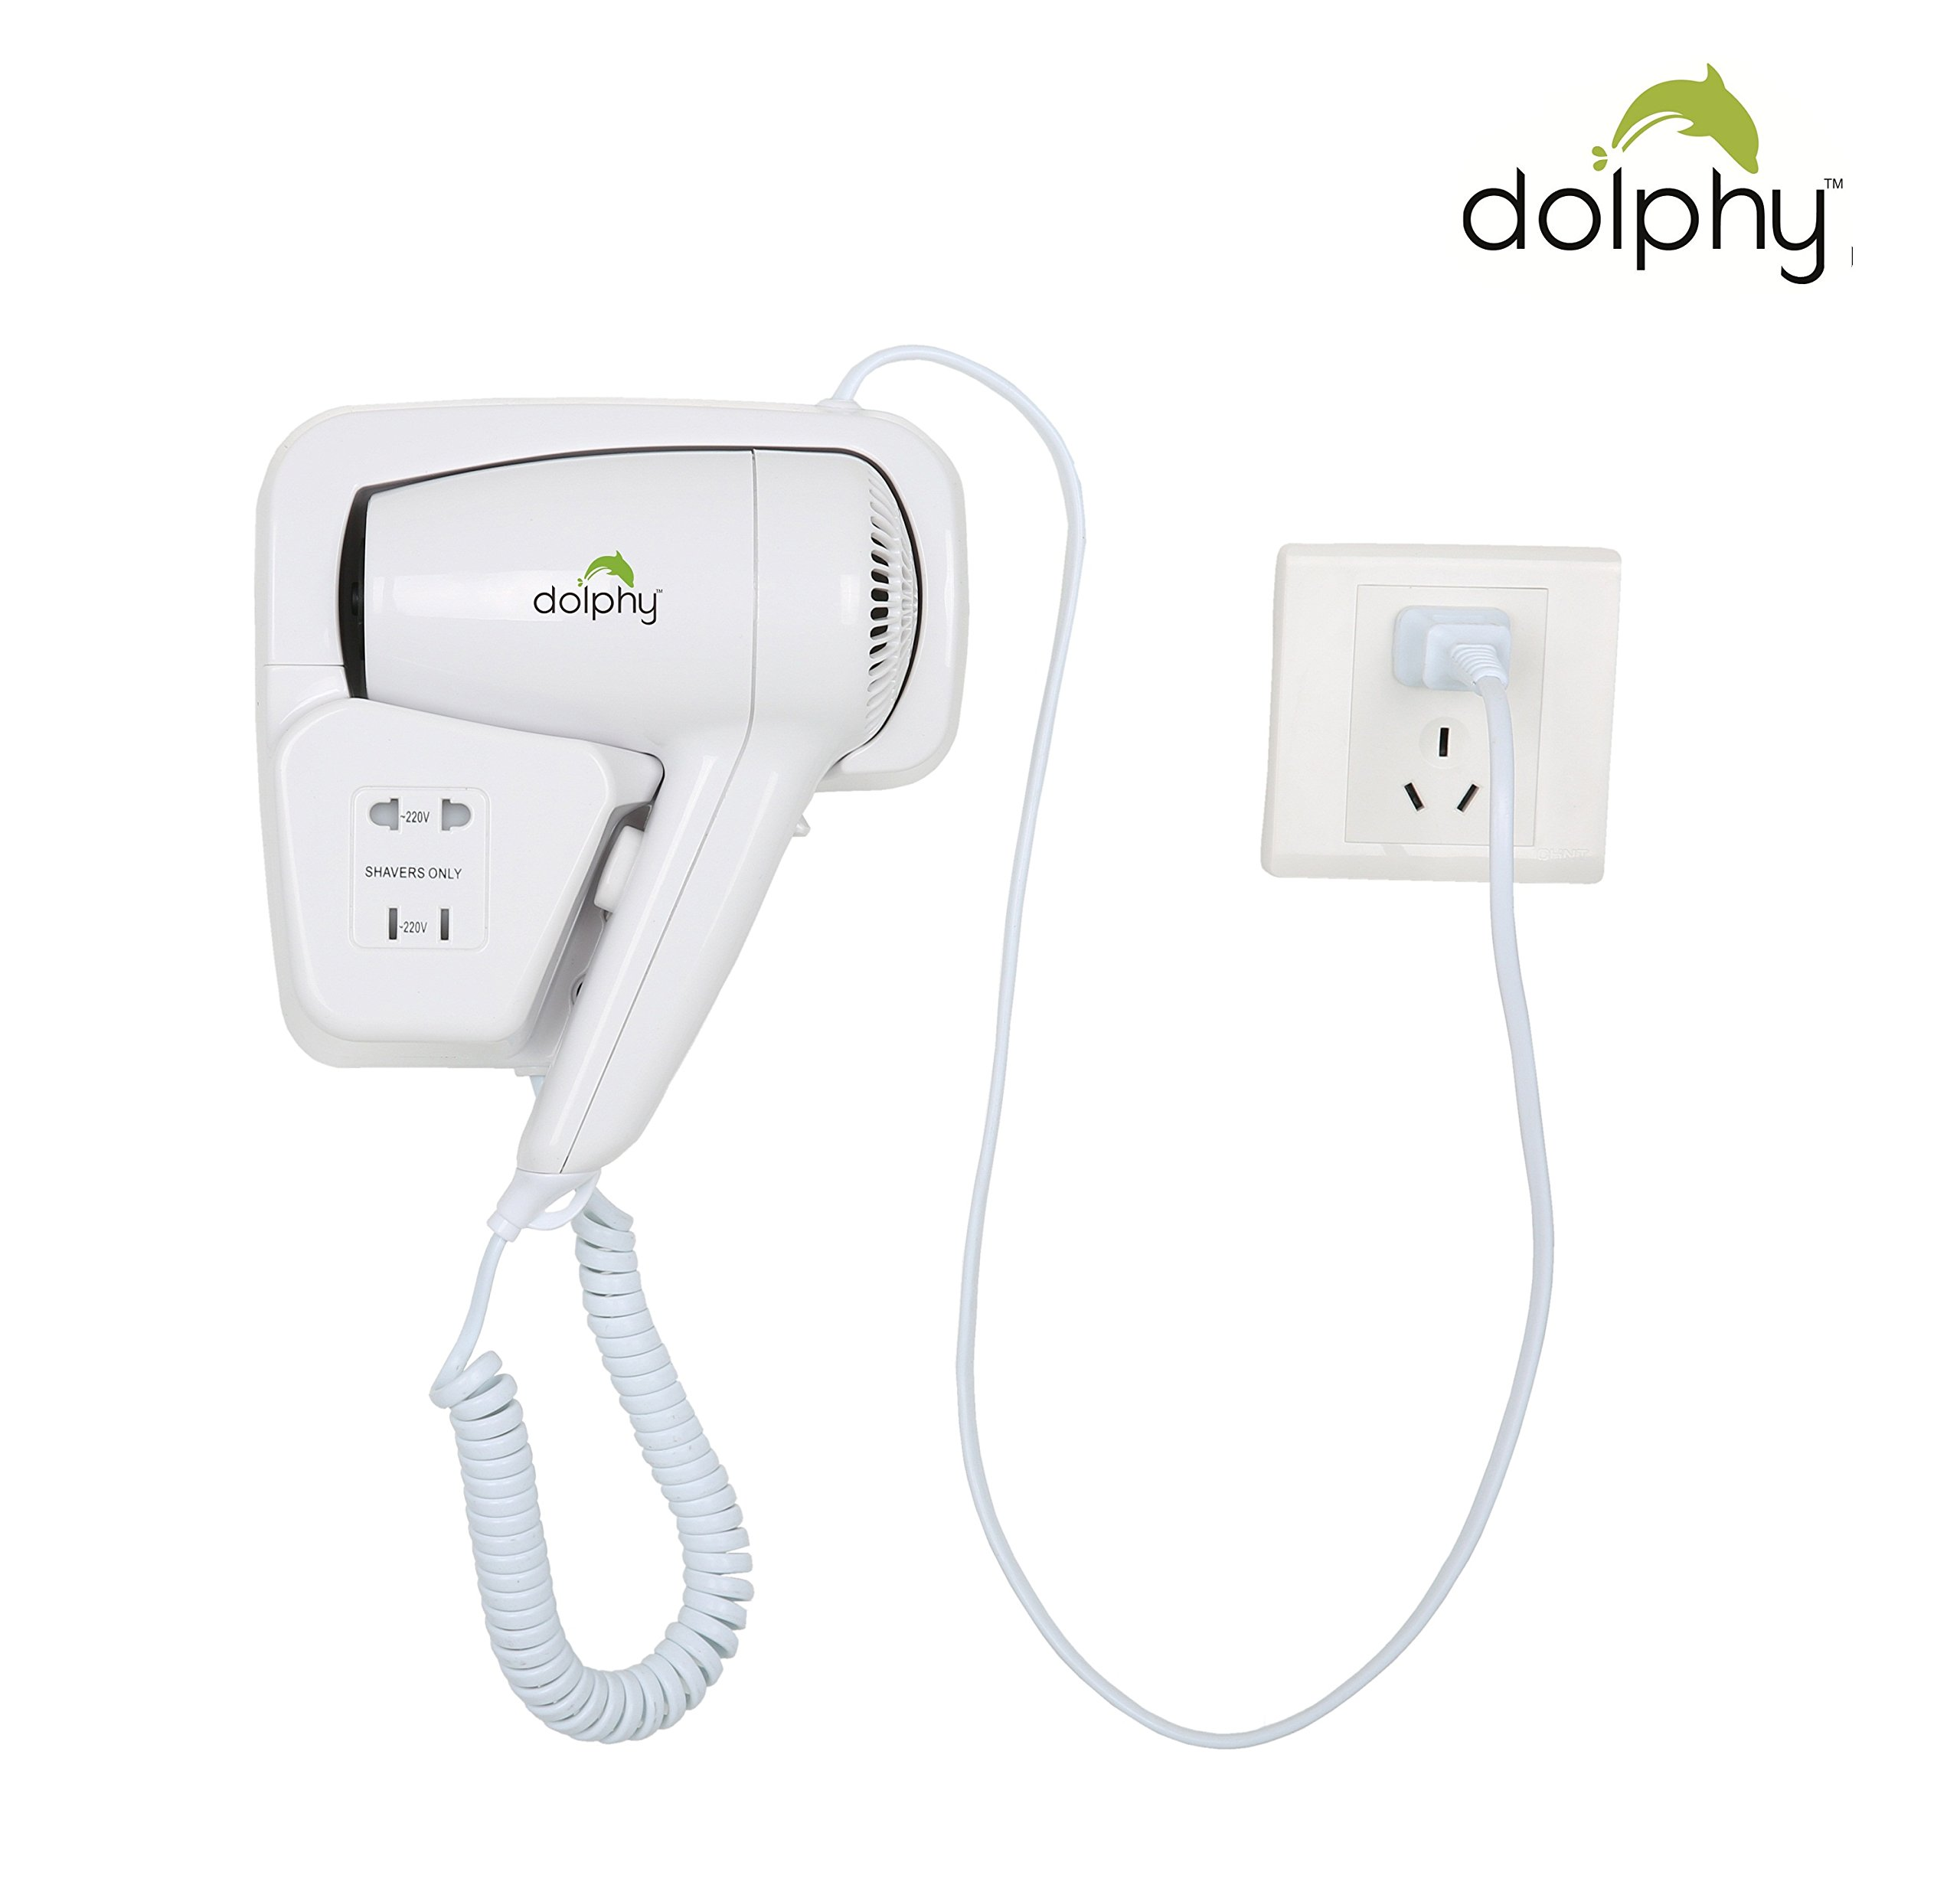 Dolphy Professional Wall Mounted Hair Dryer (White, DOLPLUGHAIRDRYER) product image